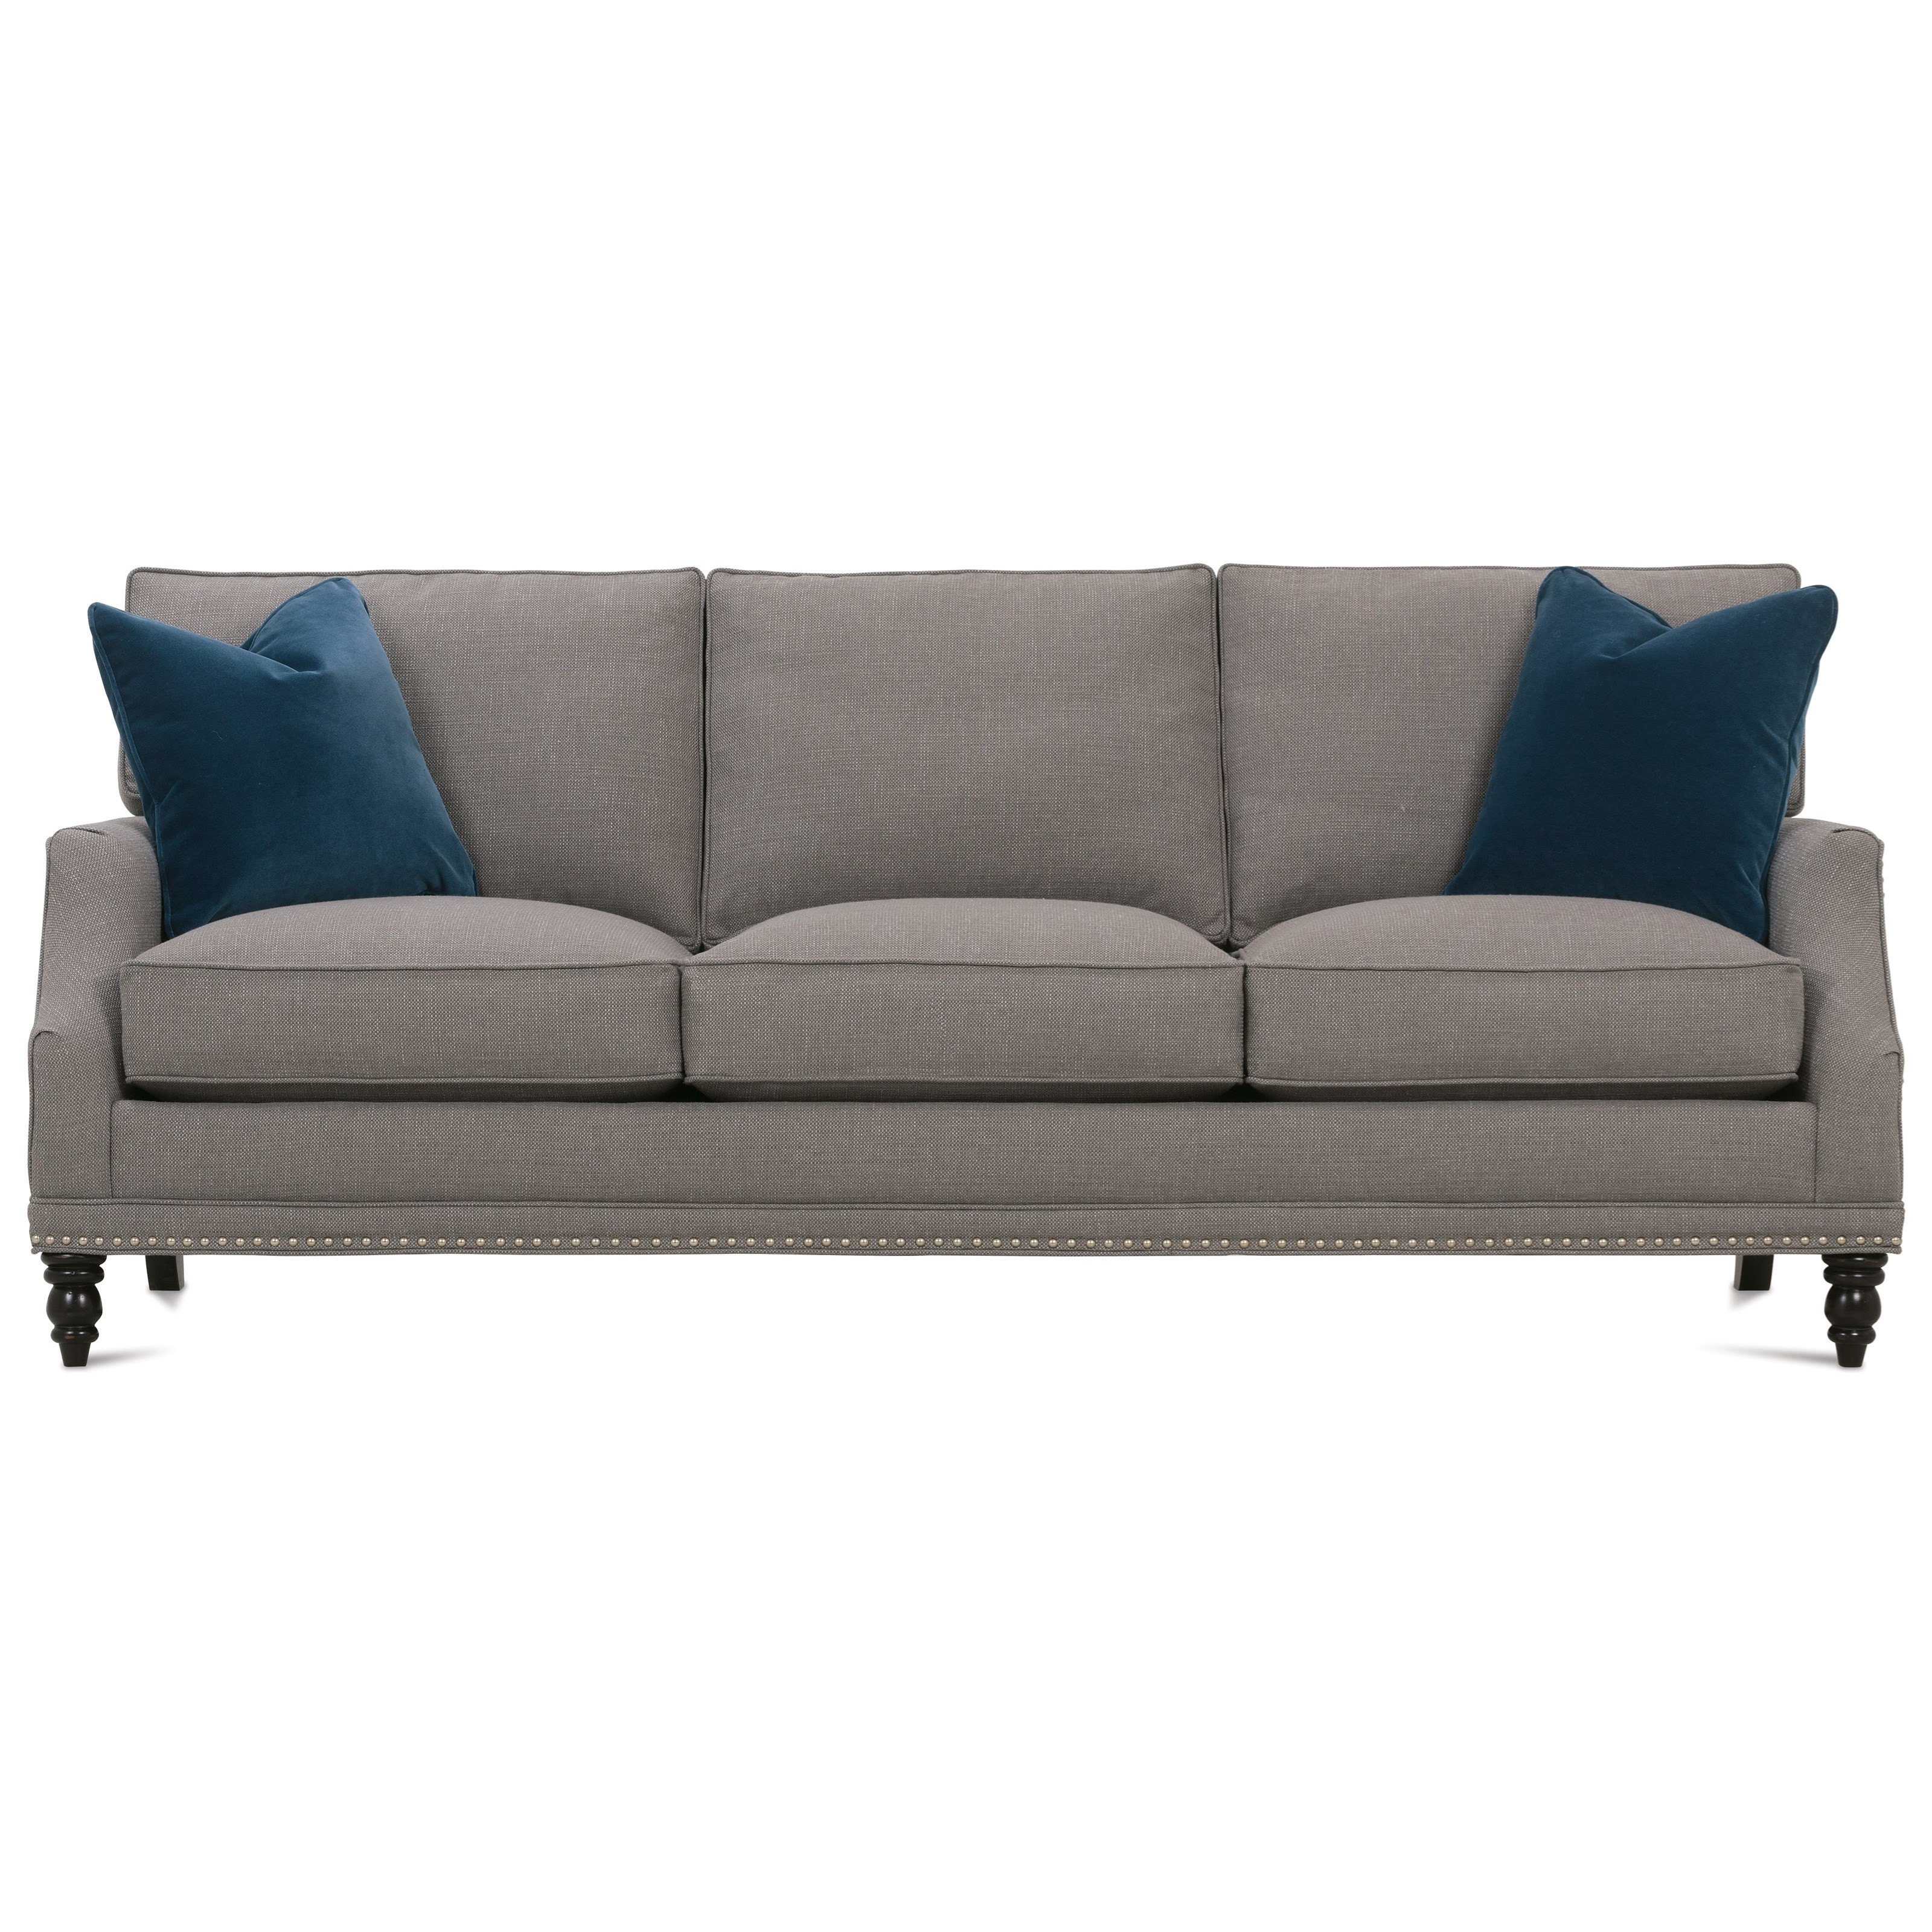 Merveilleux Rowe My Style IICustomizable Transitional Sofa Turned Legs ...